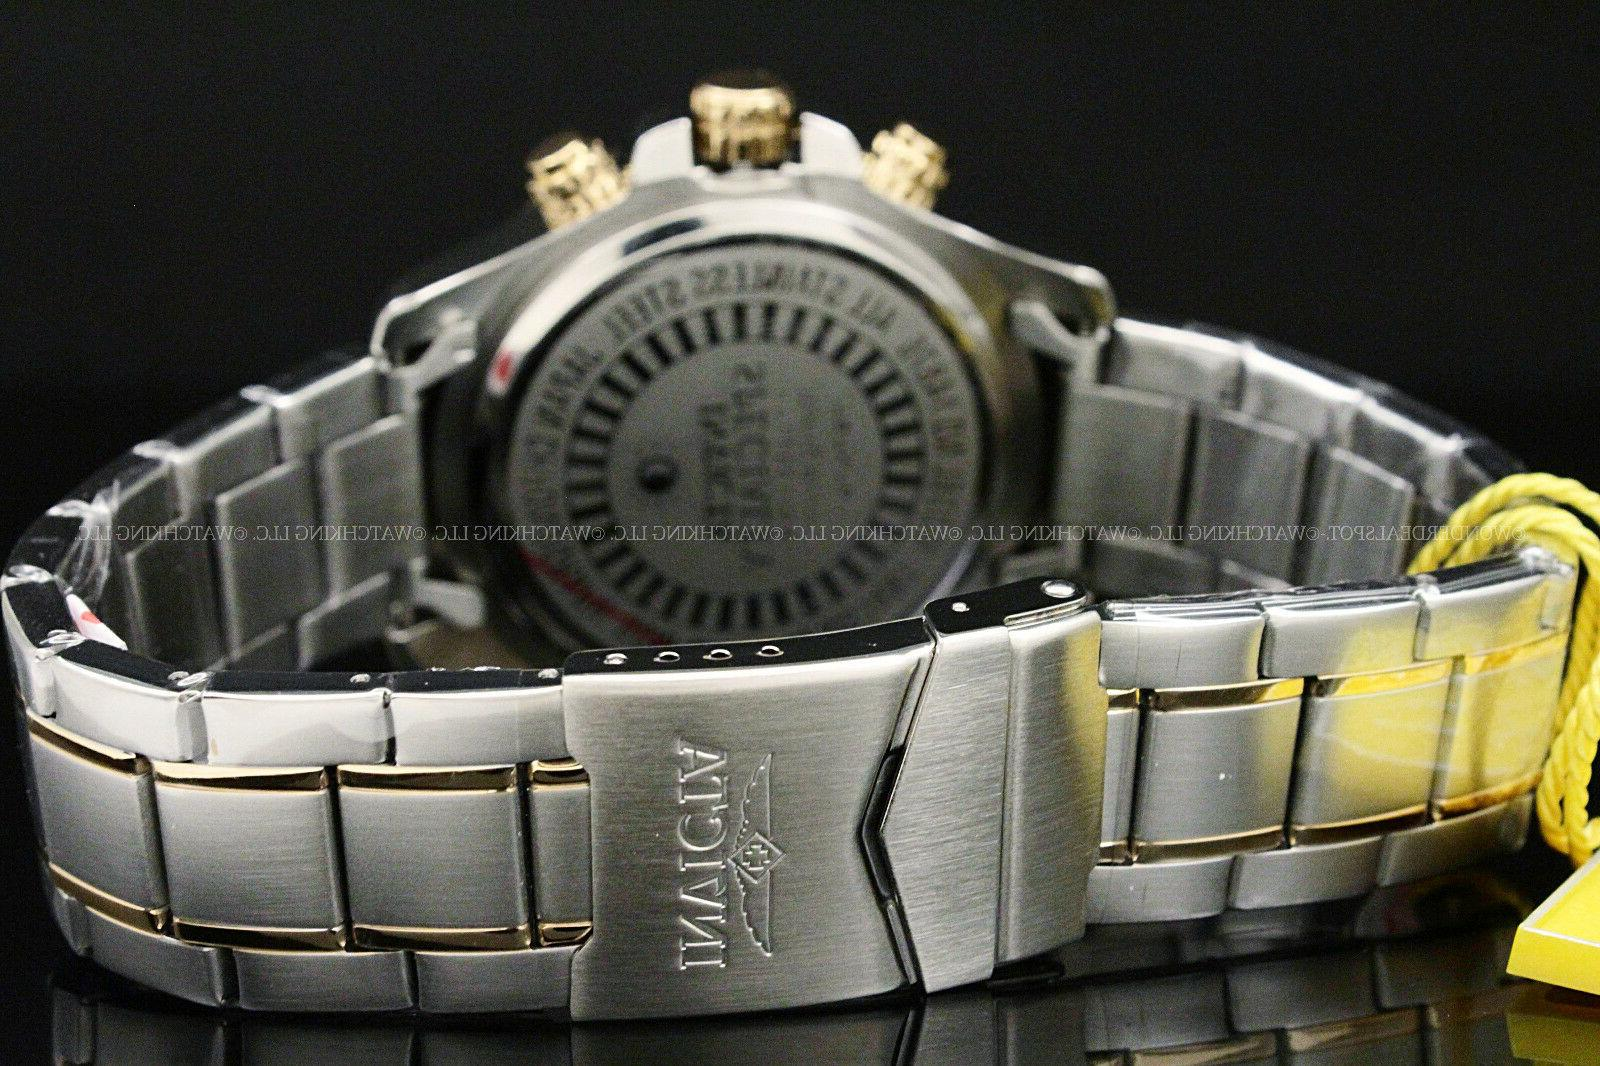 Invicta Plated Dial Chrono Watch